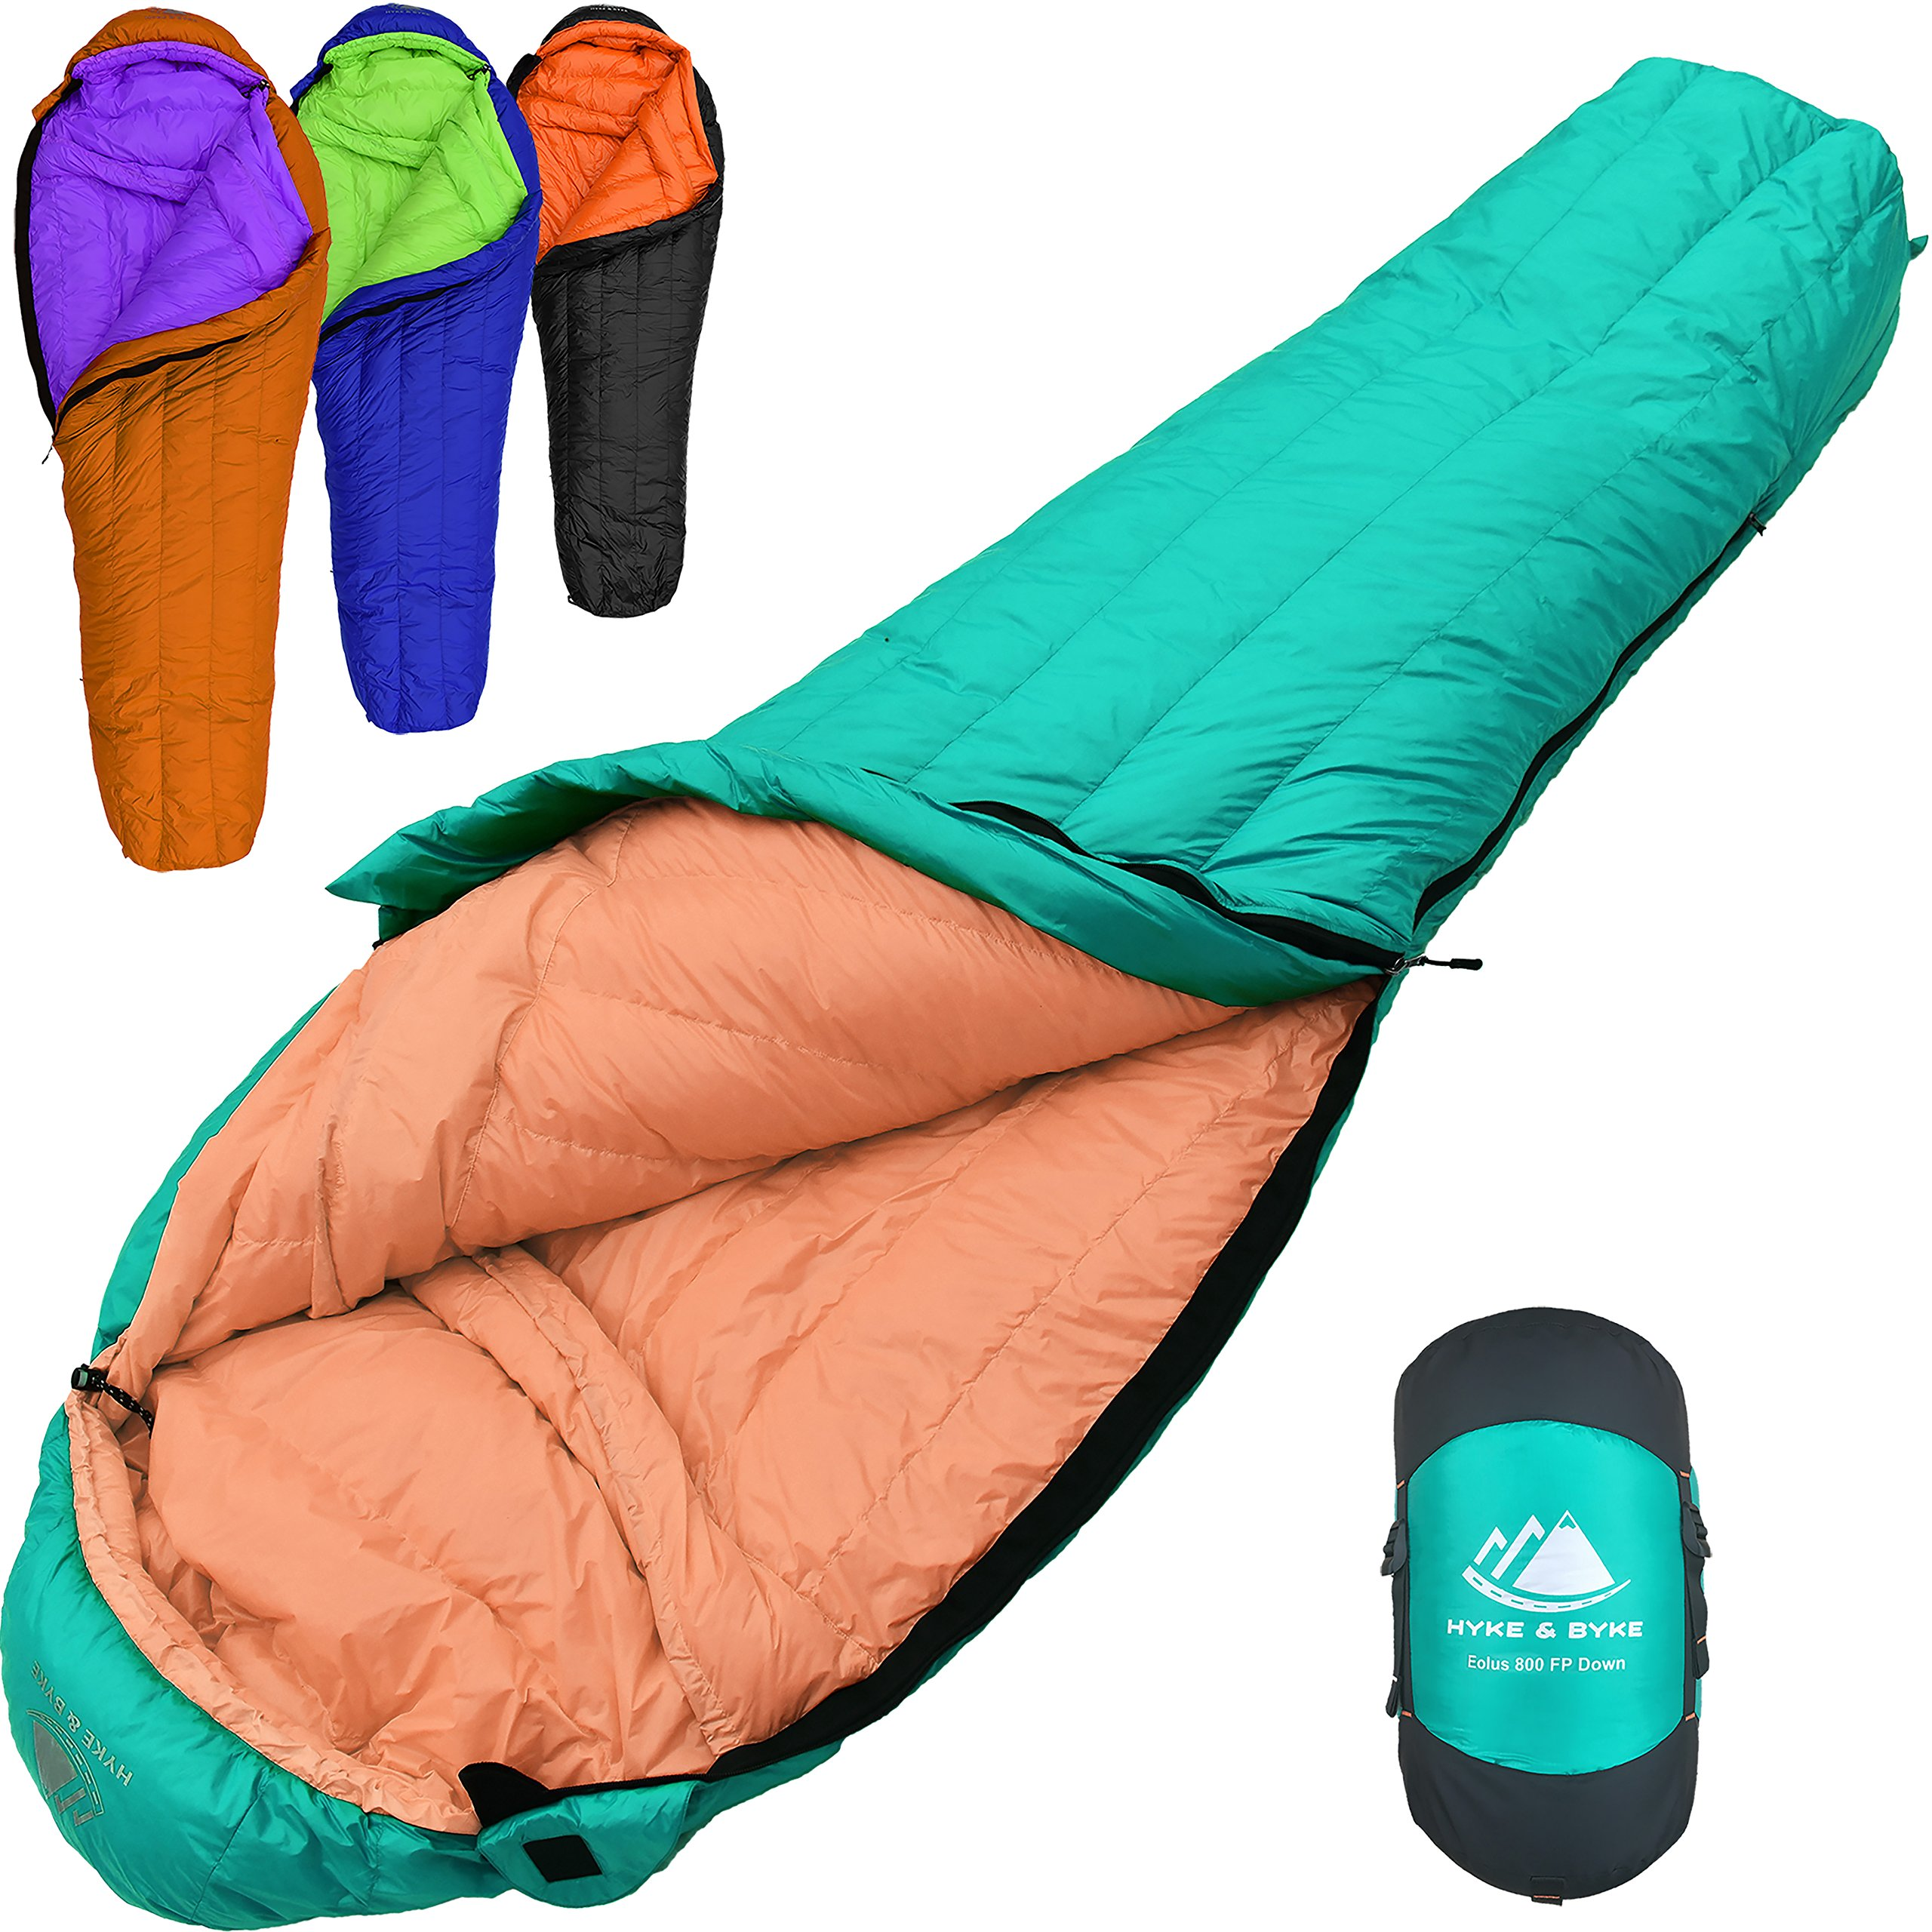 800 Fill Power Goose Down Sleeping Bag for Backpacking - Eolus 15/30 Degree F Ultralight, Down Filled 3 Season Men's and Women's Lightweight Mummy Bags (30 Degree - Mint/Tangerine, Regular) by Hyke & Byke